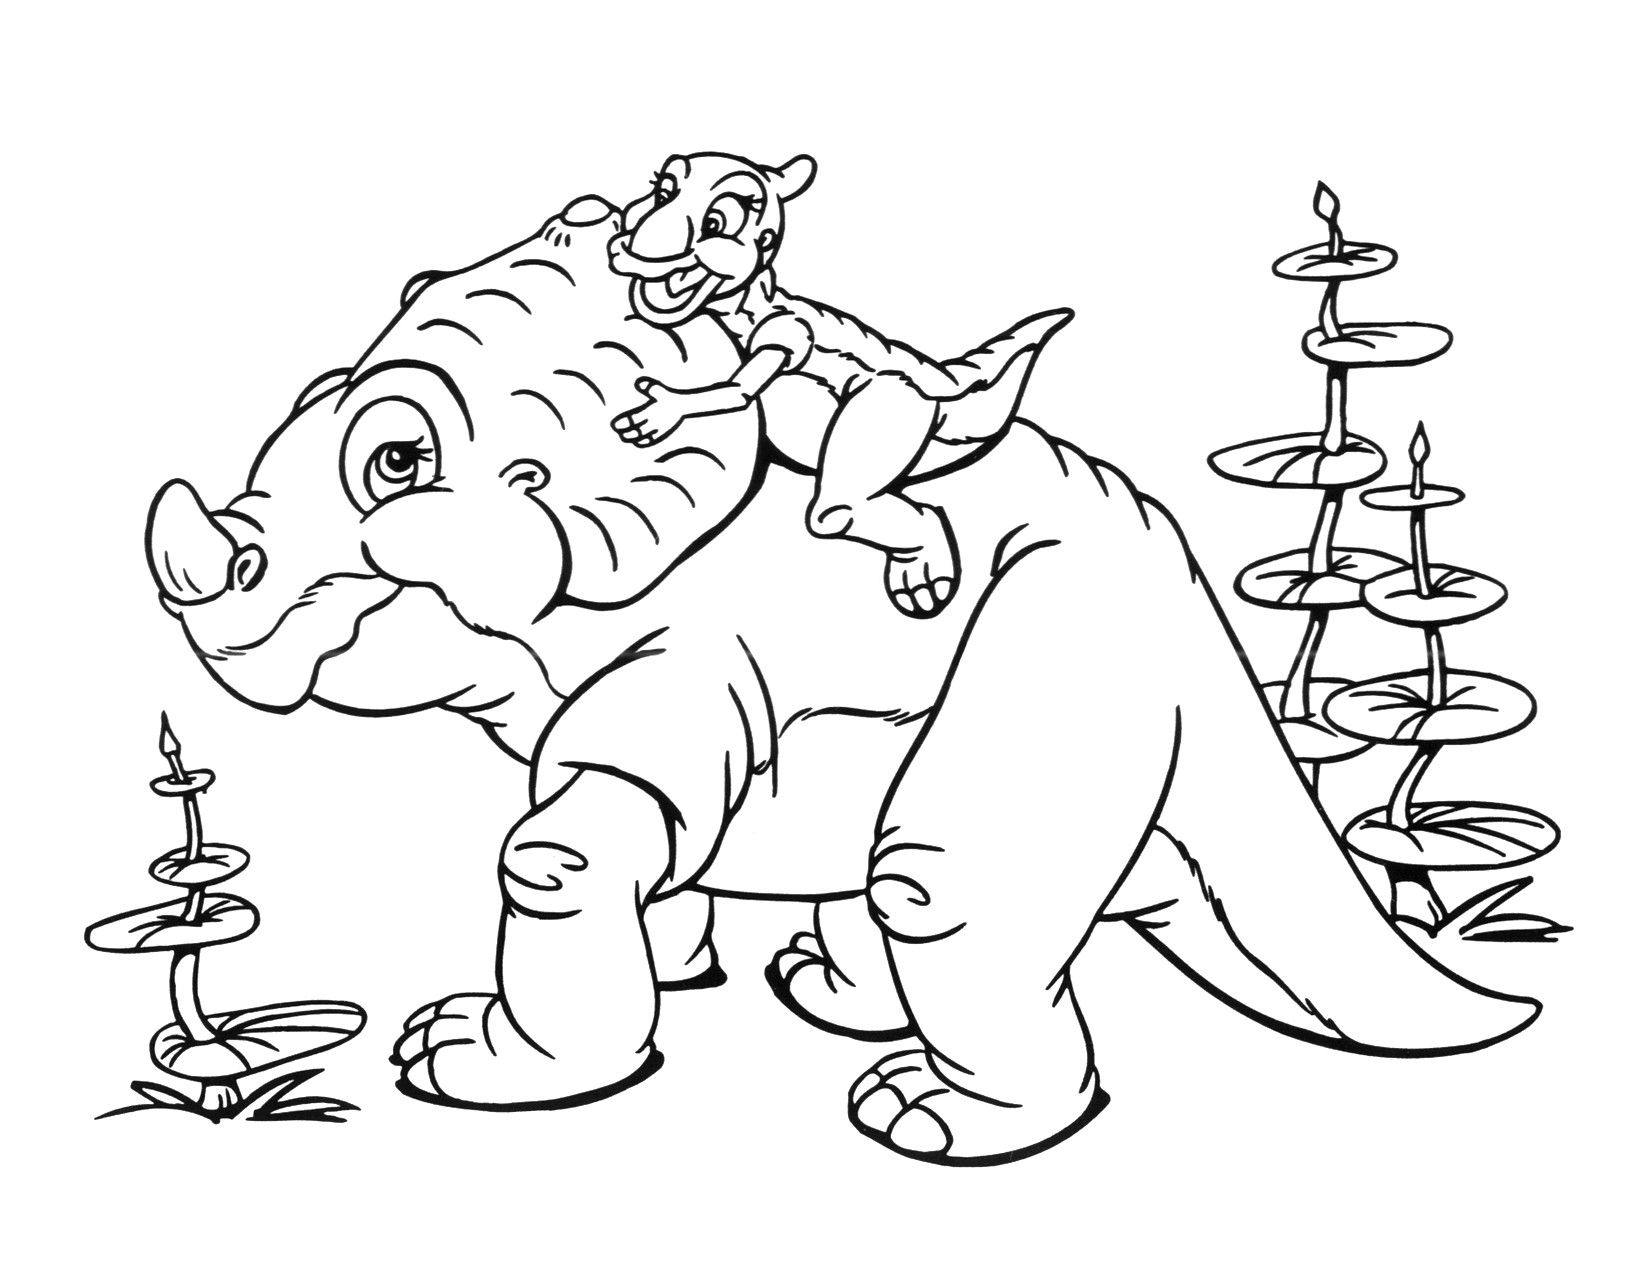 Lab Rats Coloring Pages Printables Http Www Wallpaperartdesignhd Us Lab Rats Coloring Pages Witch Coloring Pages Horse Coloring Pages Elephant Coloring Page